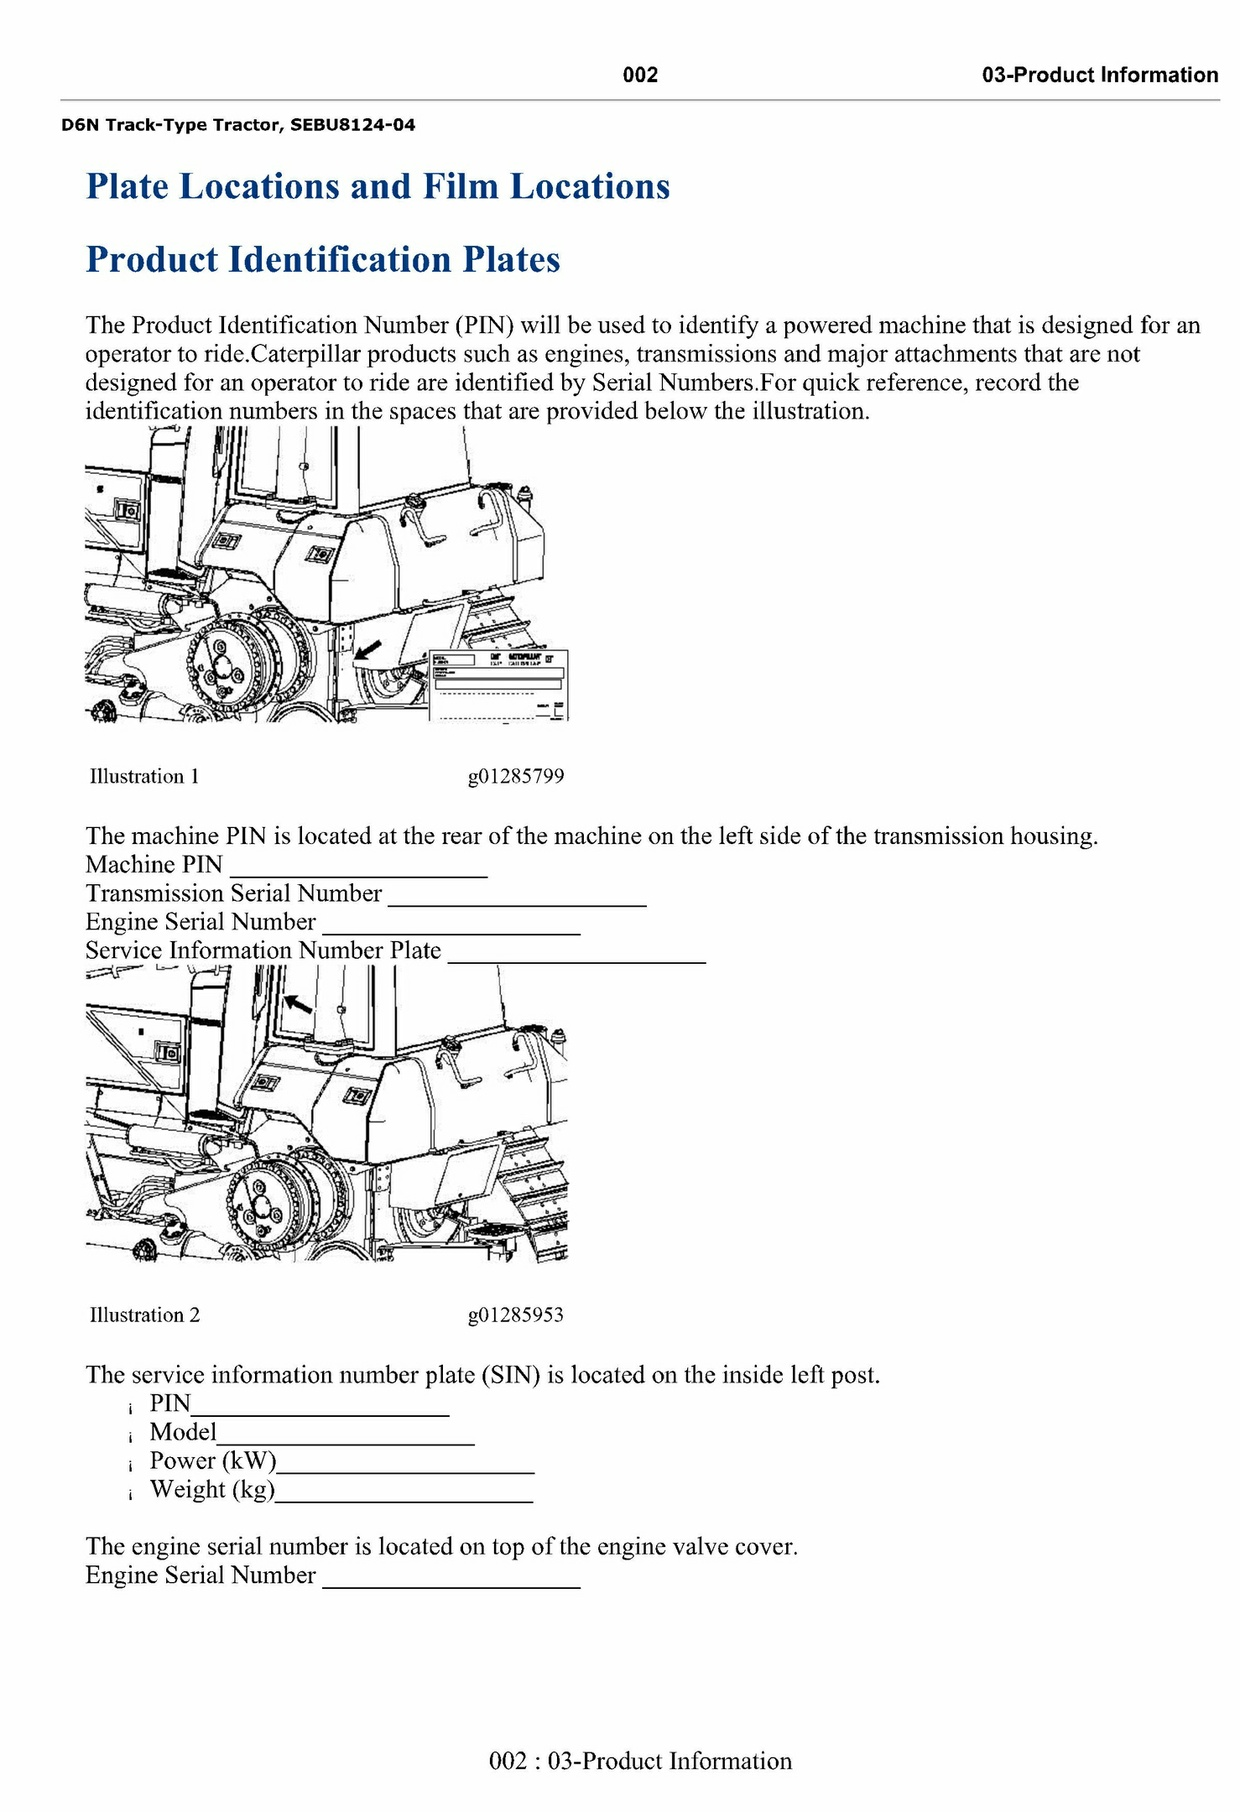 Cat Caterpillar D6N Track-Type Tractor - Operation & Maintenance Manual